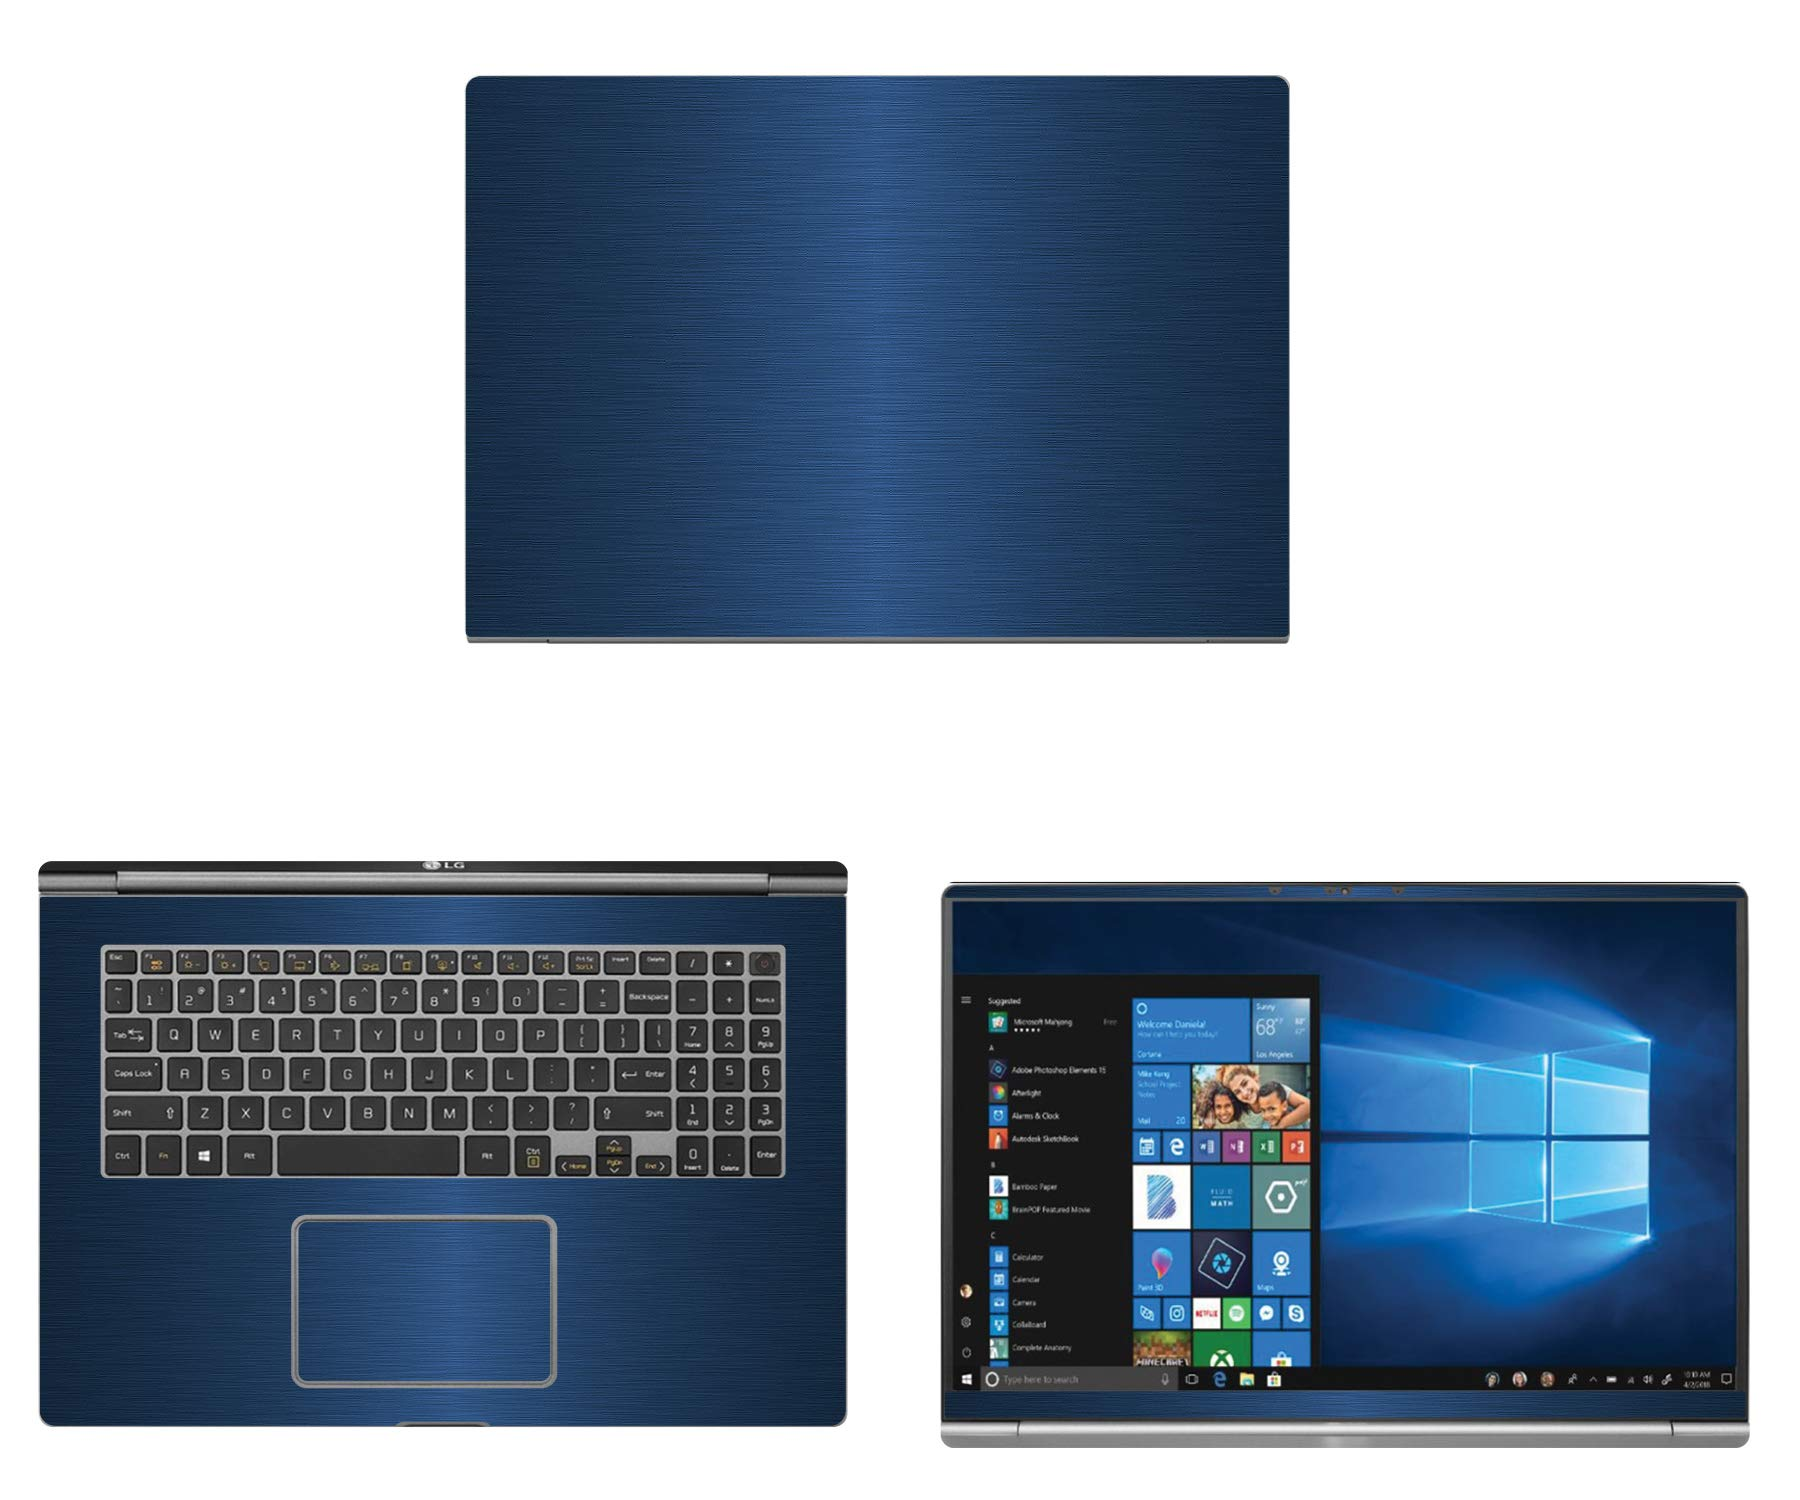 decalrus - Protective Decal for LG Gram 17Z990 (17.3'' Screen) Laptop Blue Texture Brushed Aluminum Skin case Cover wrap BAlgGram17_17Z990Blue